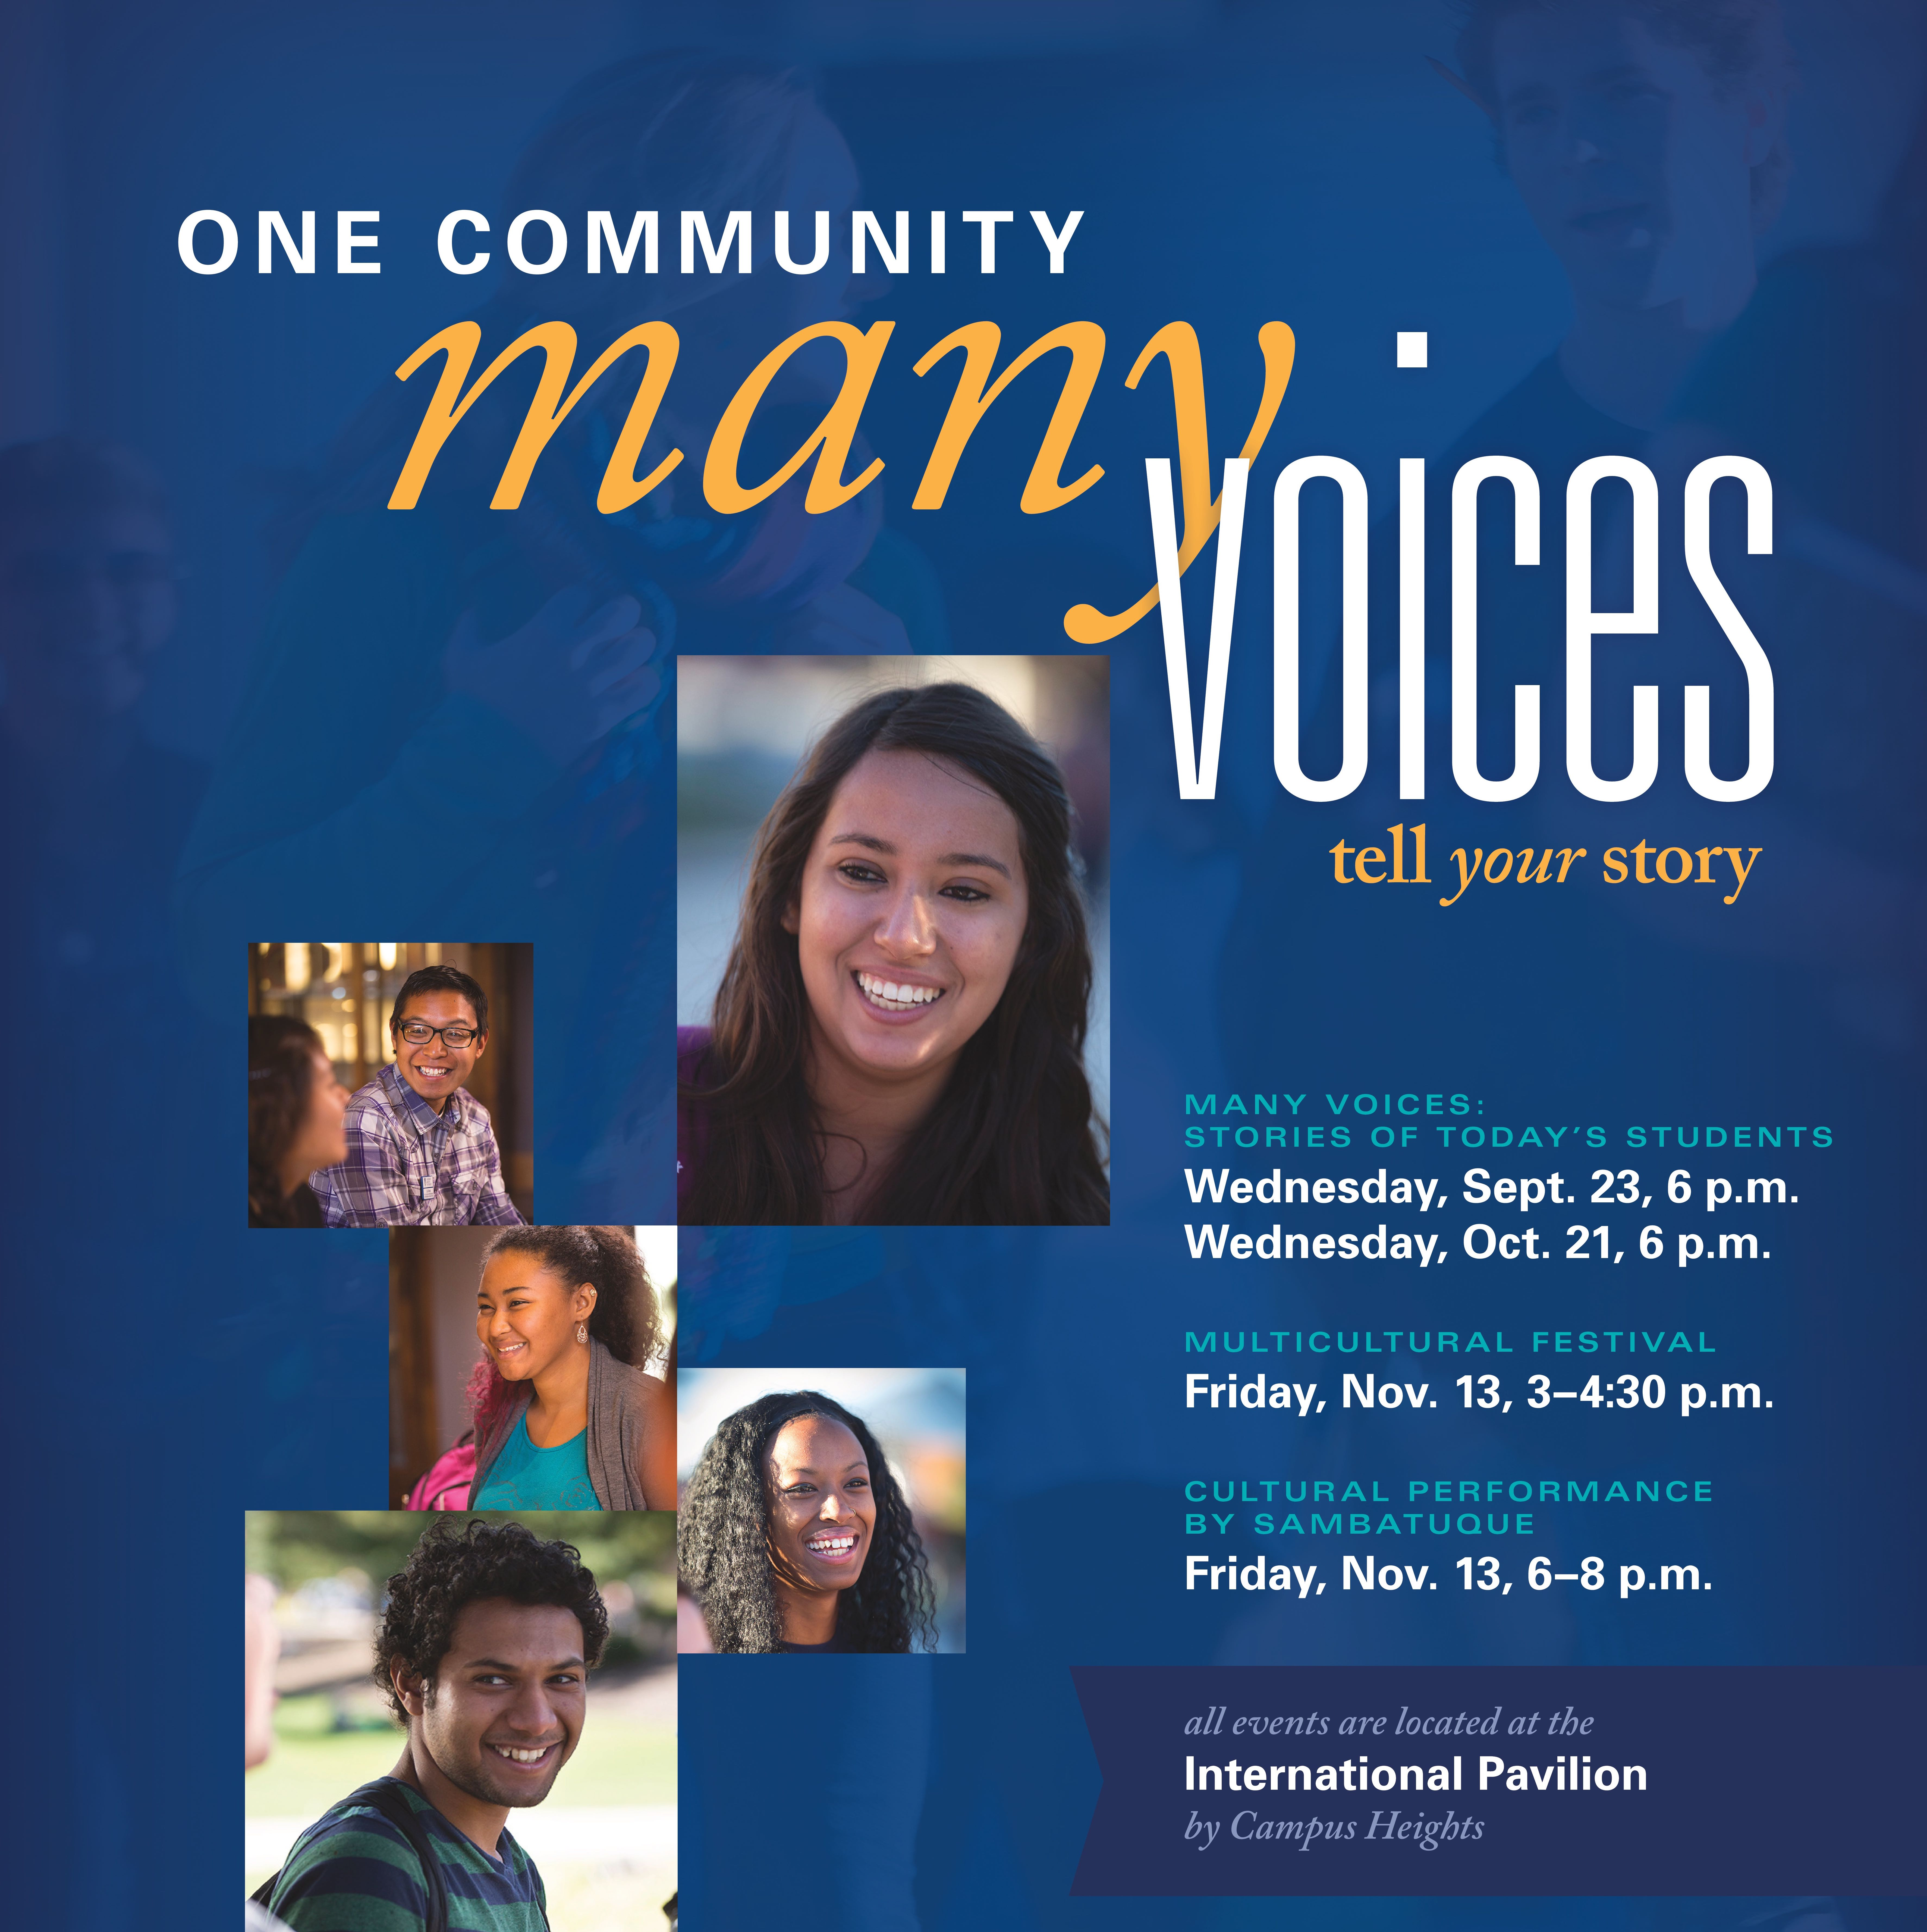 One Community many voices tell your story poster